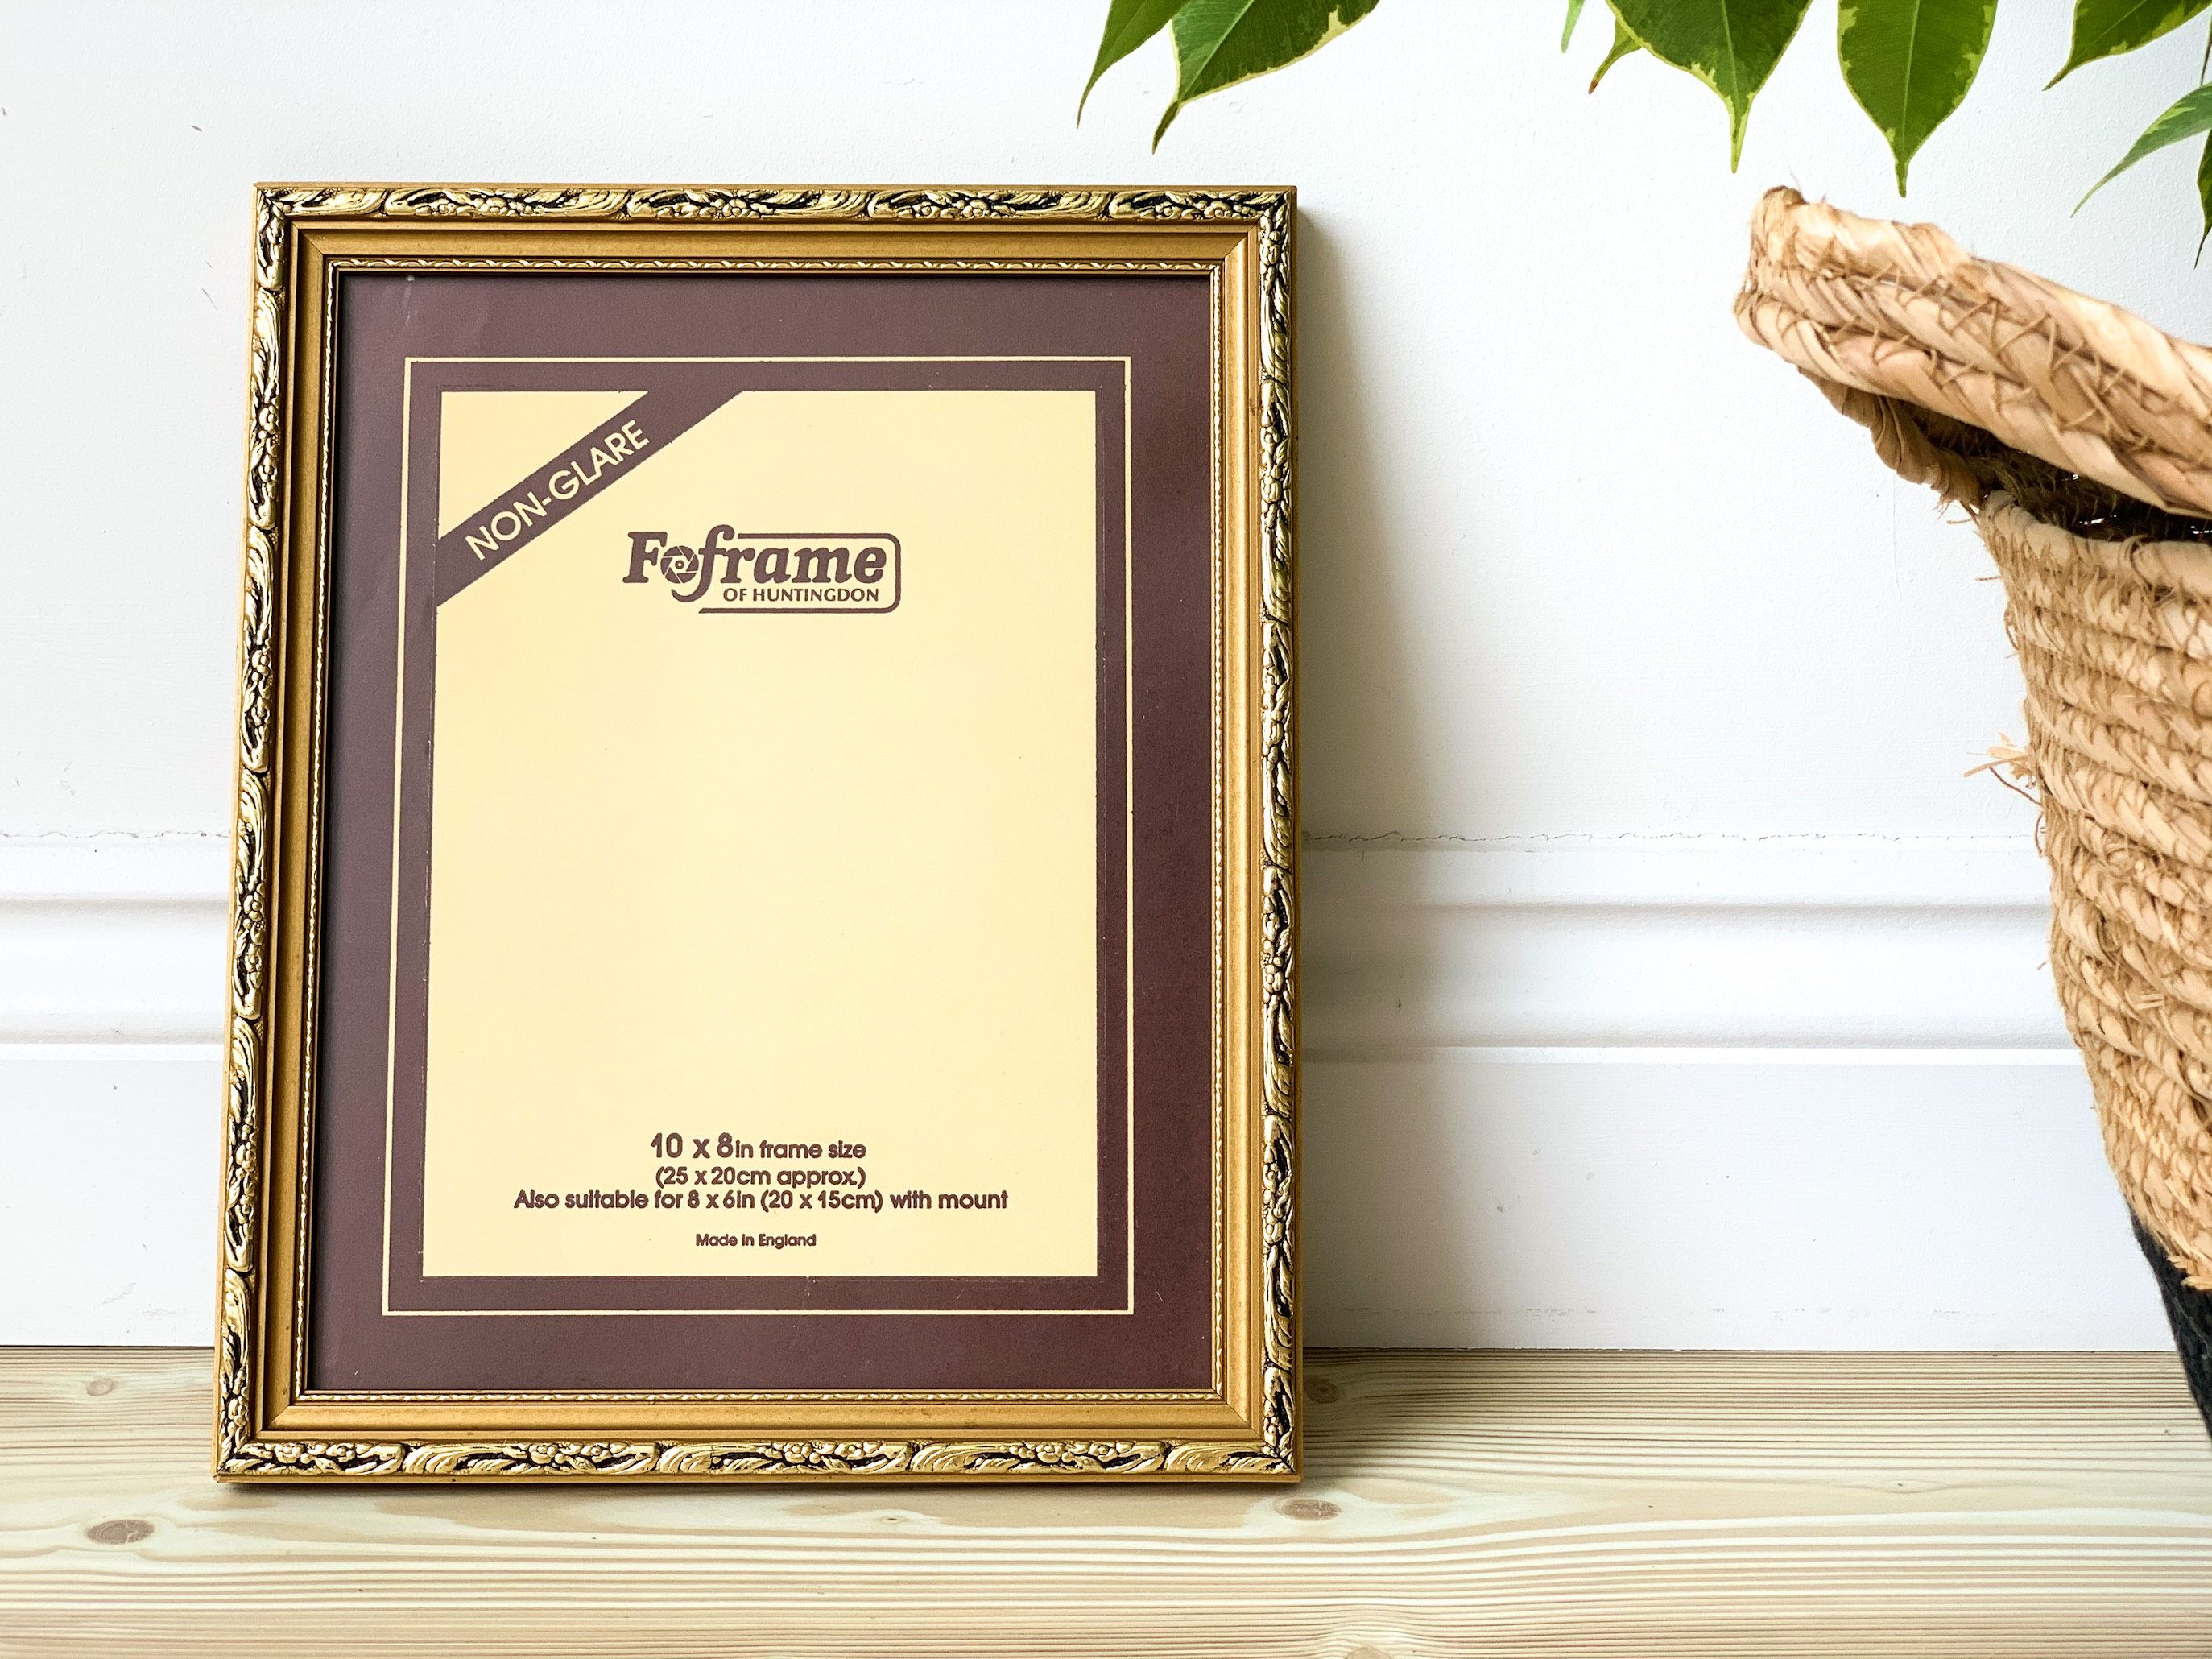 Vintage Gold Photo Frame By Foframe Of Huntington 10x8 Inches Ornate Gold Decorative Picture F In 2020 Picture Frame Decor Gold Photo Frames Vintage Home Accessories